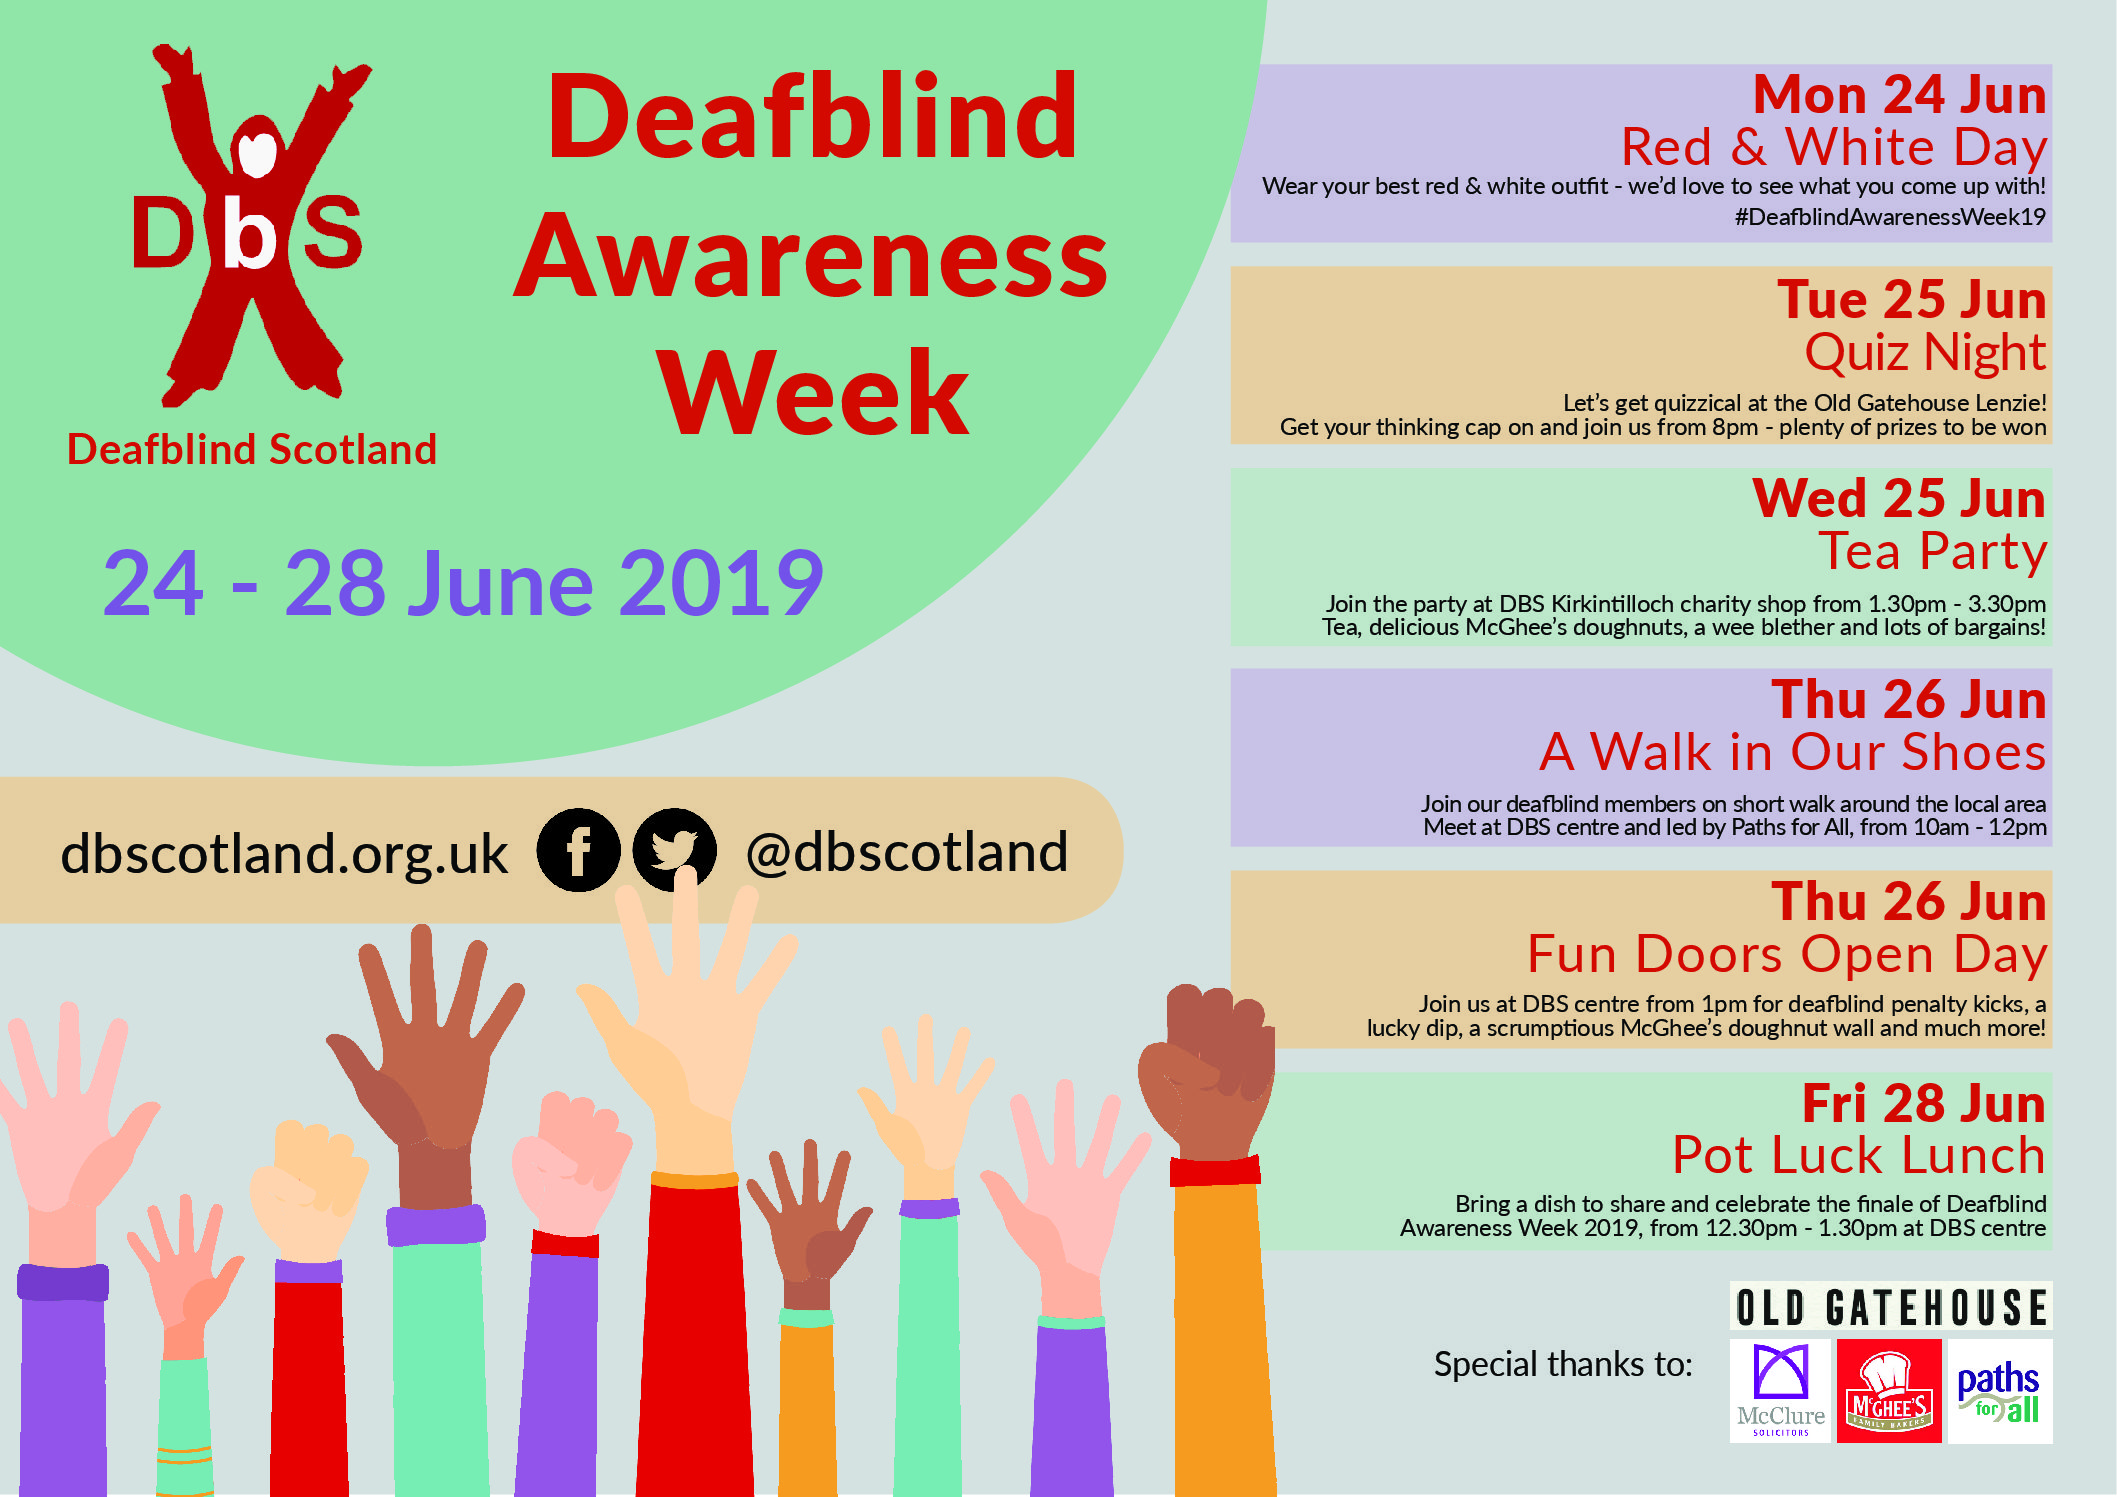 Deafblind Awareness Week 2019